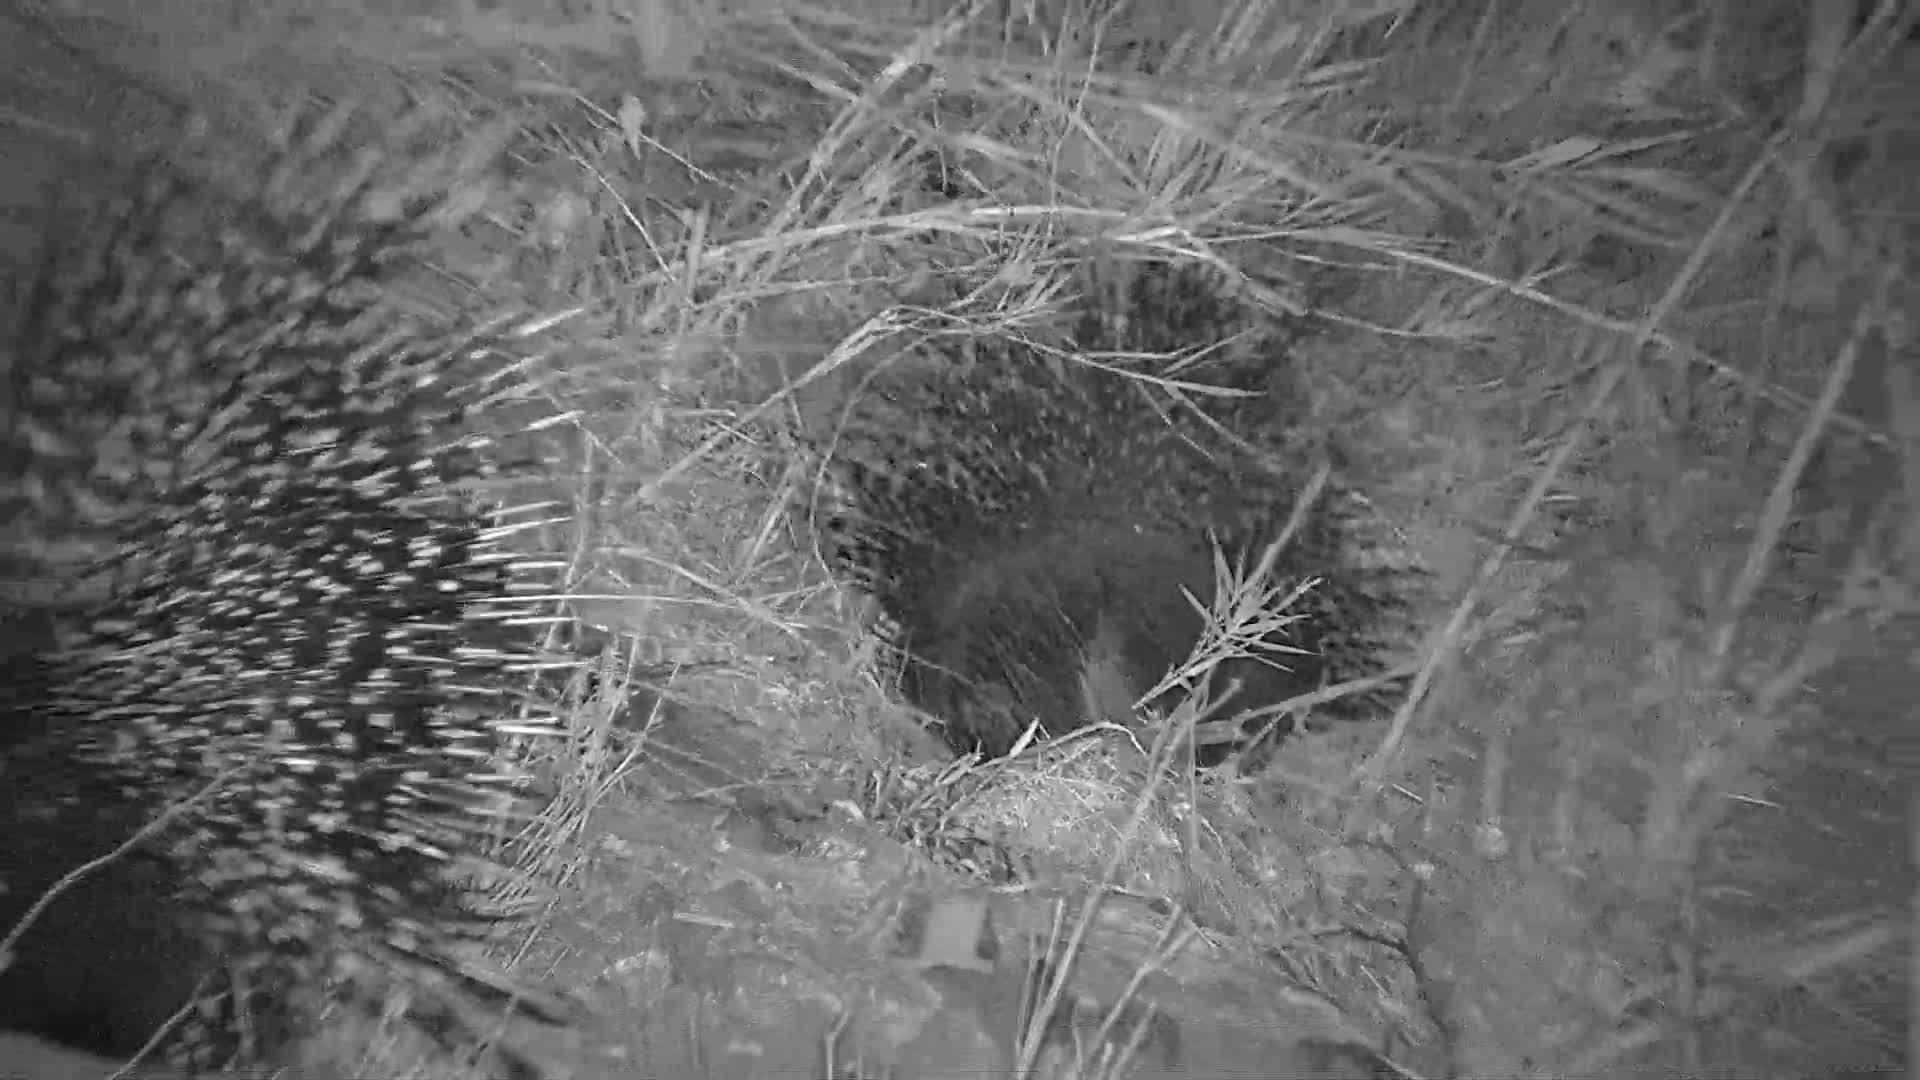 VIDEO: Porcupines looking for food